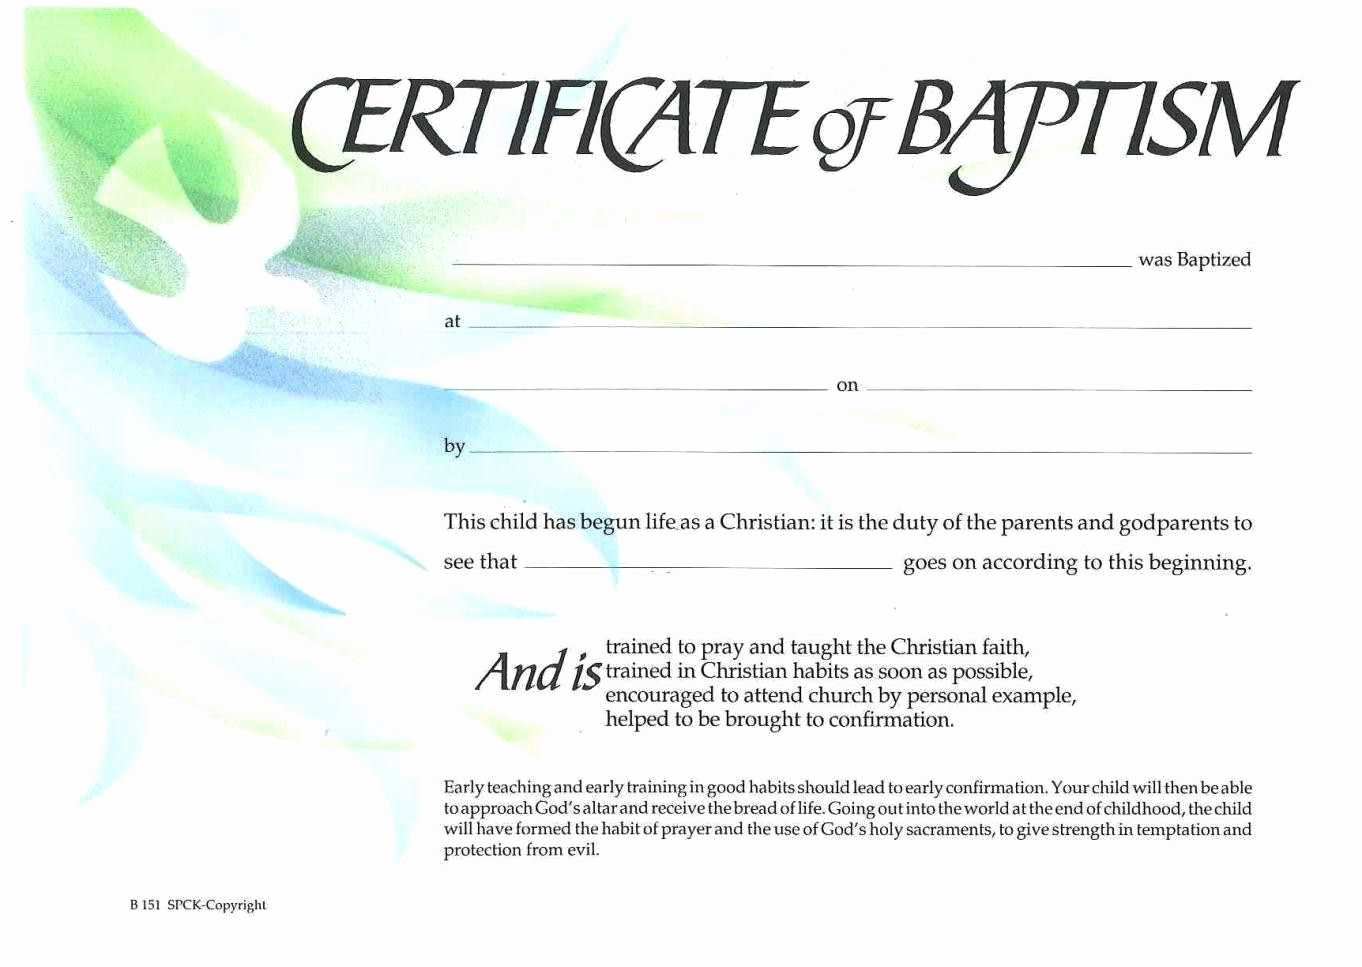 Baptism Certificate Template Word Inspirational Sample Baptism Certificate Templates